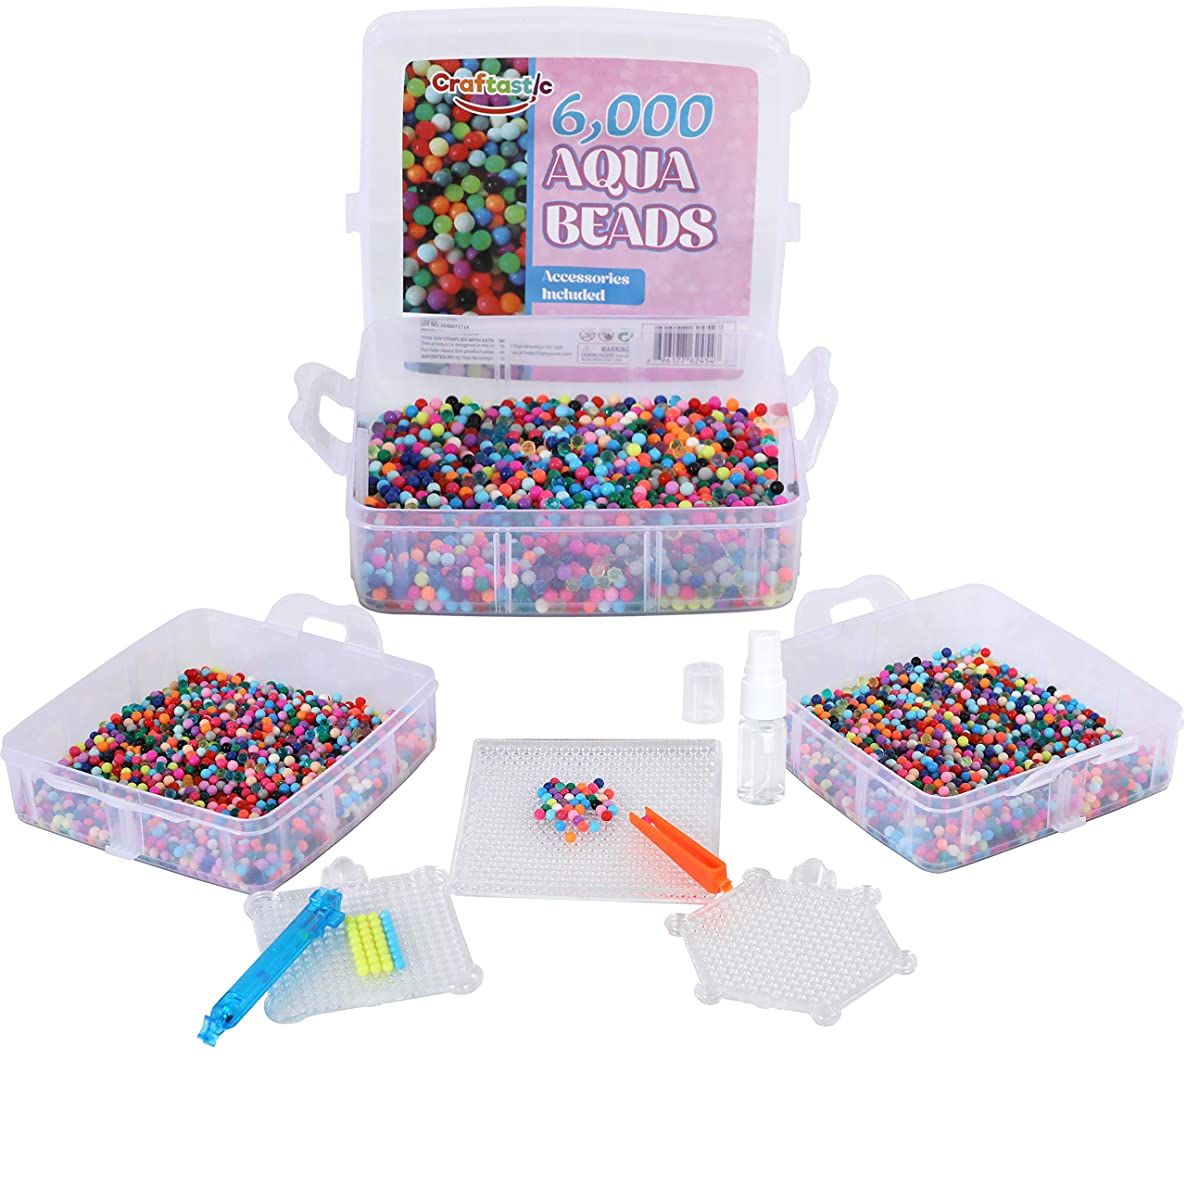 Kraftic EZ Water Beads- Complete Set with 6,000 Mulit Color Beads and 6 Accessories. Comes in a Clear Storage Container